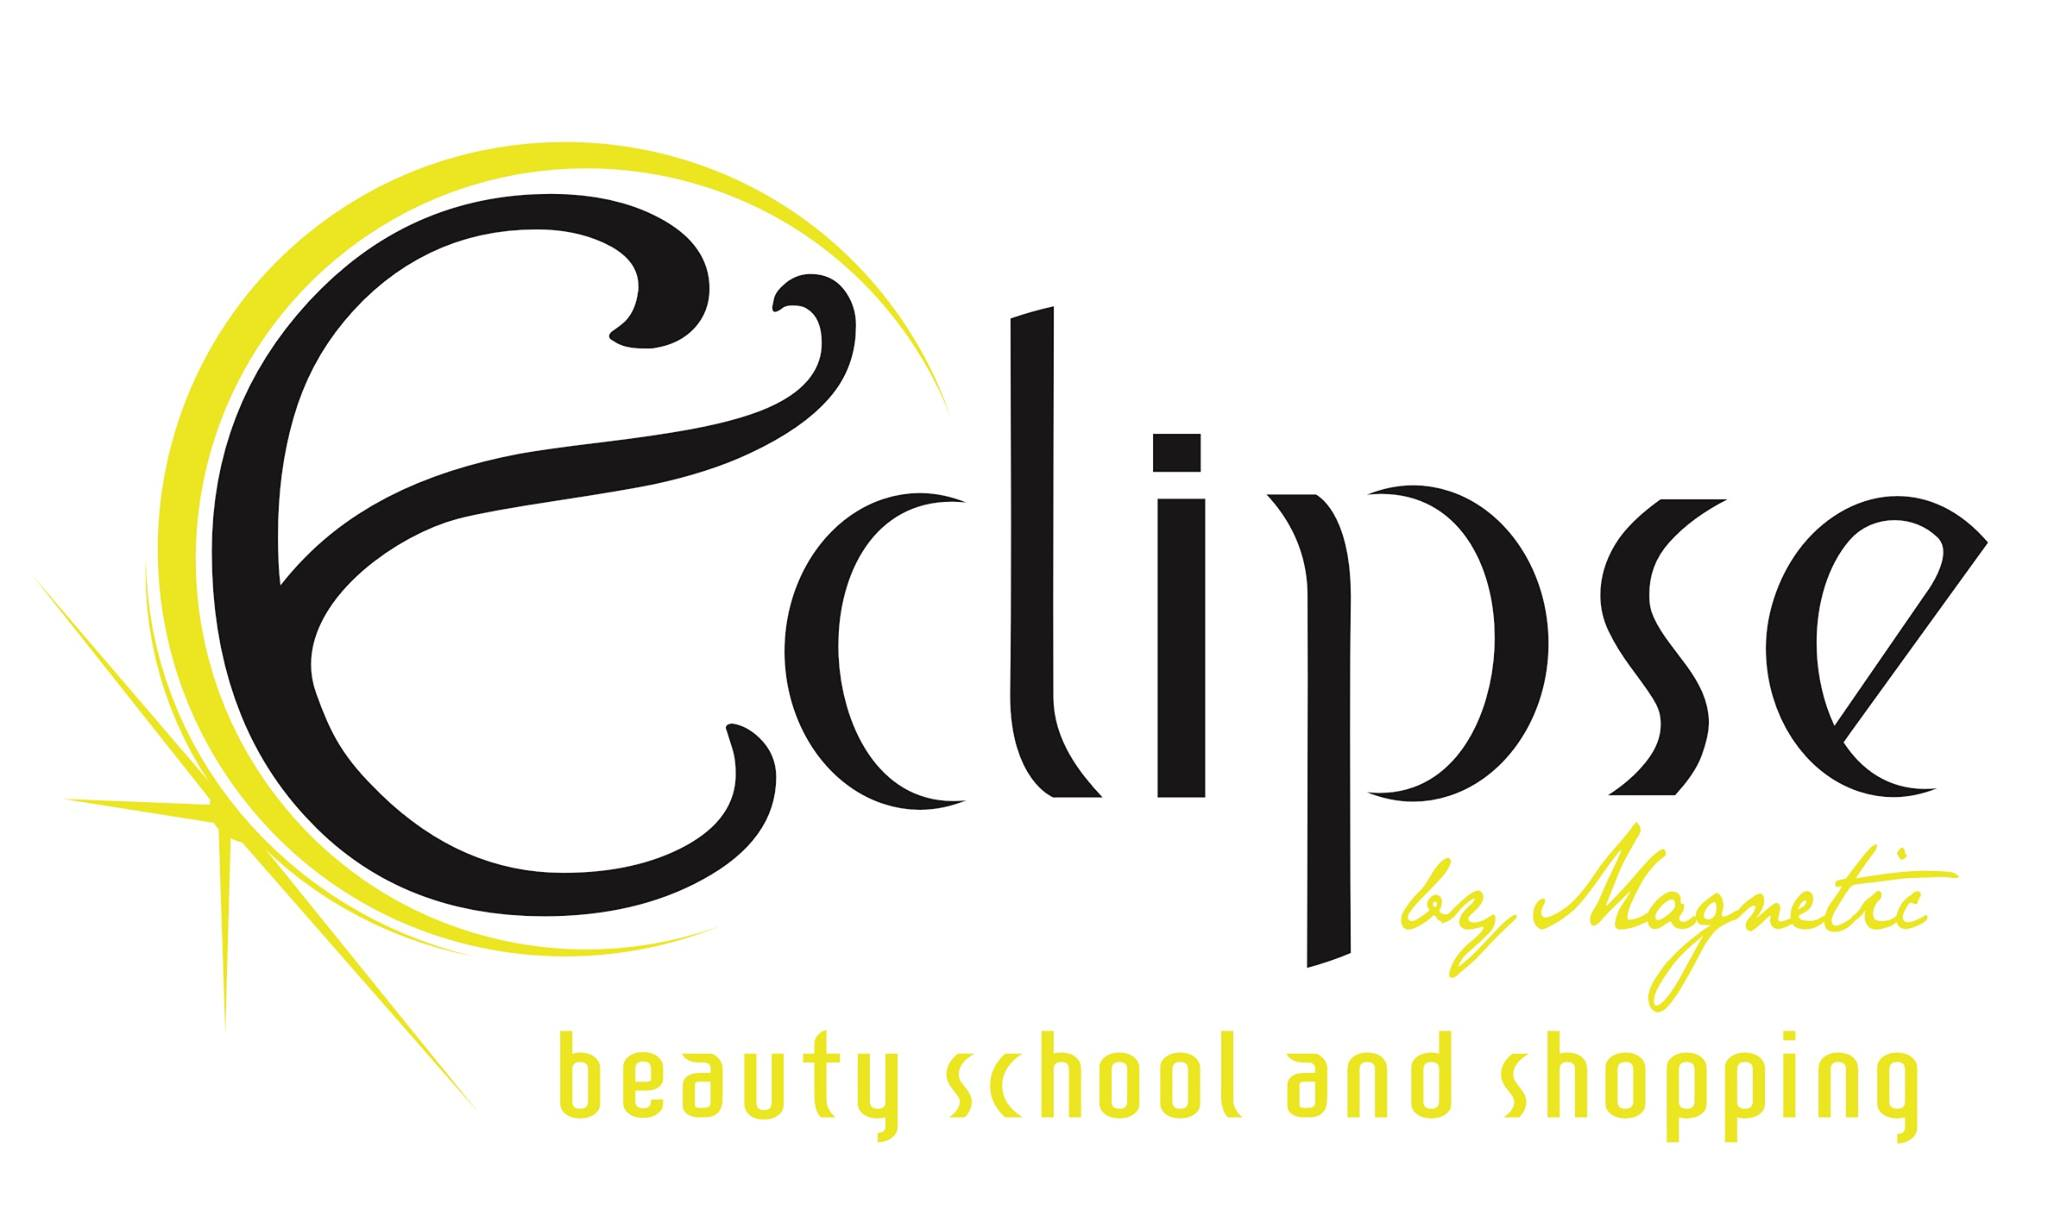 Eclipse By Magnetic